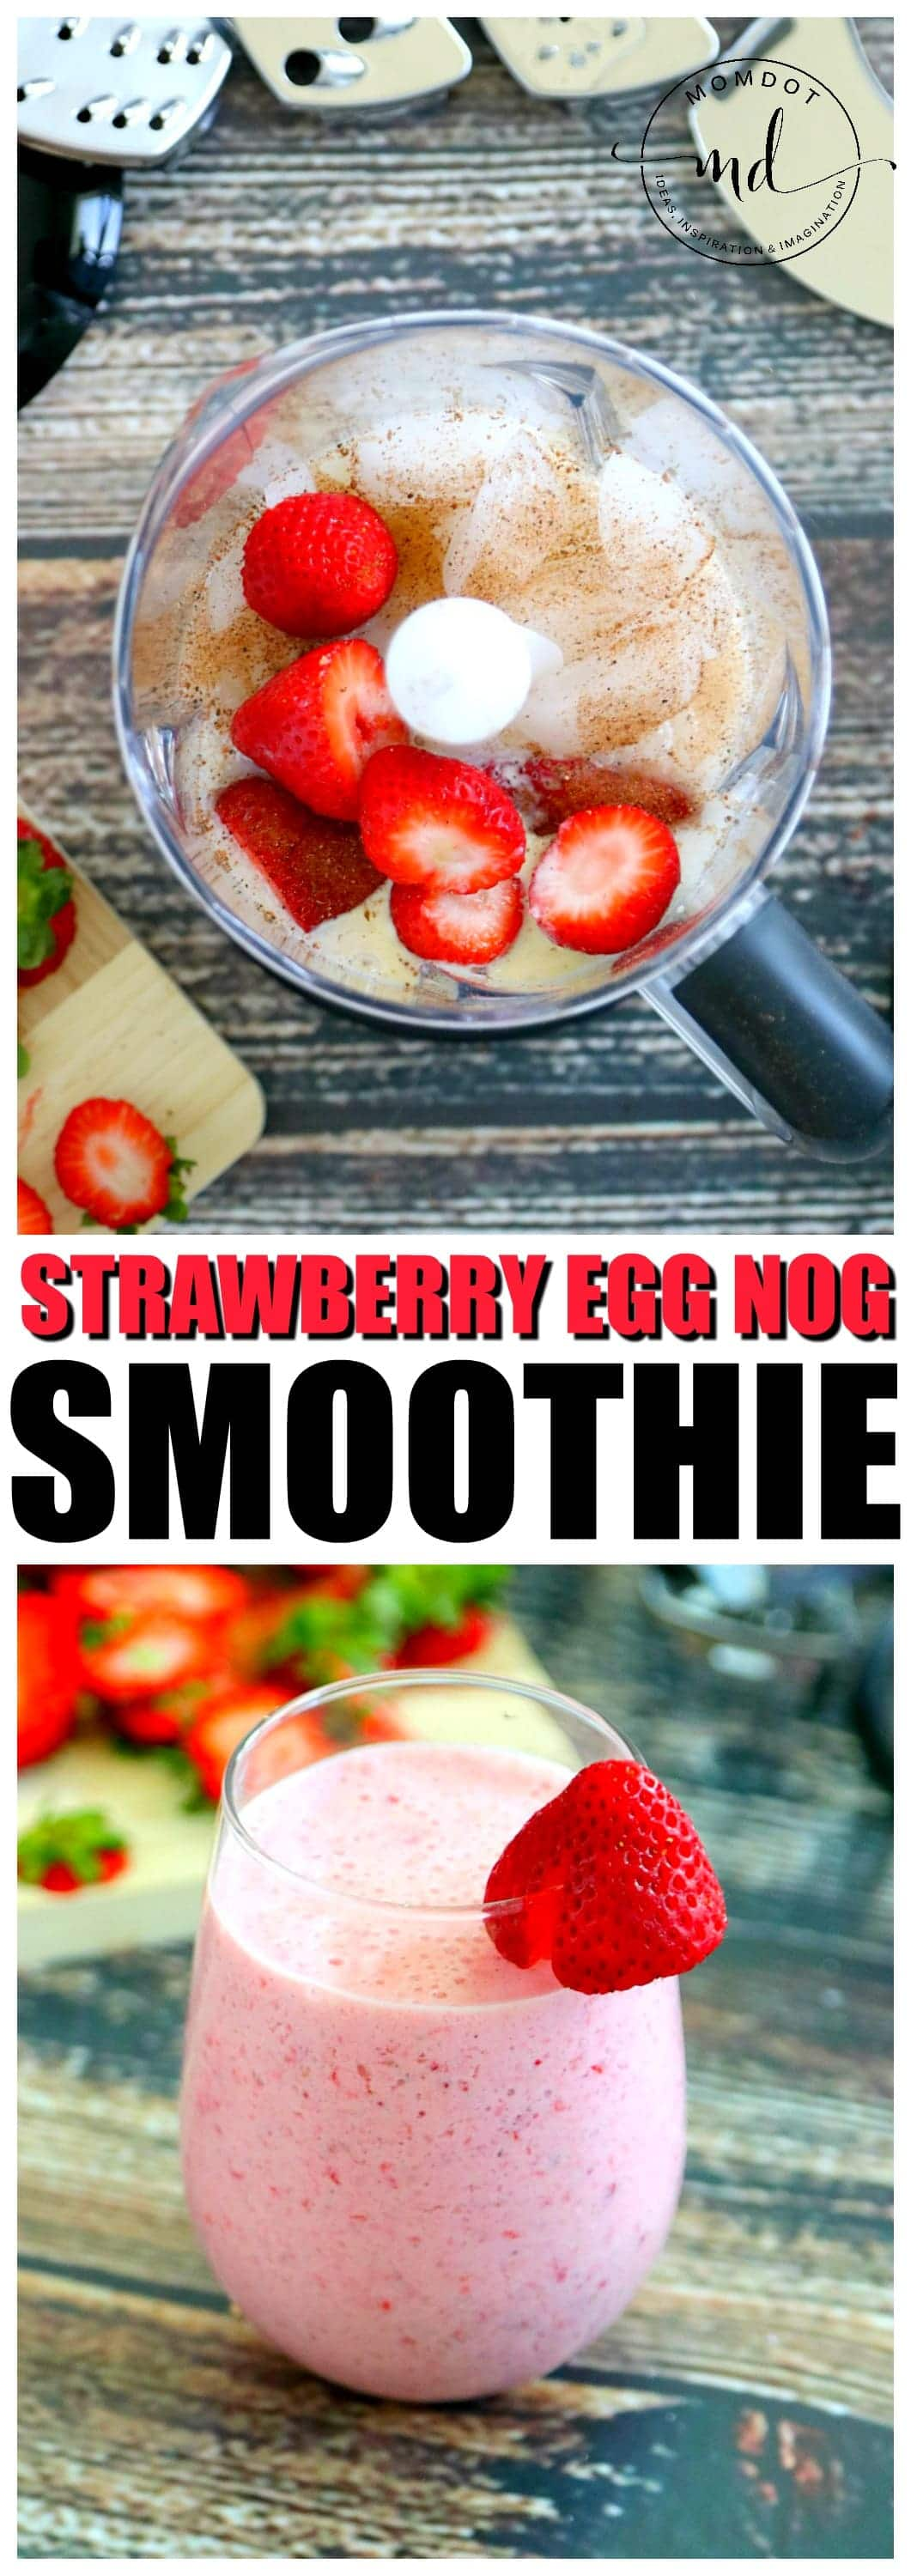 Strawberry Egg Nog Smoothie | Breakfast Smoothie | Strawberry Banana Smoothie